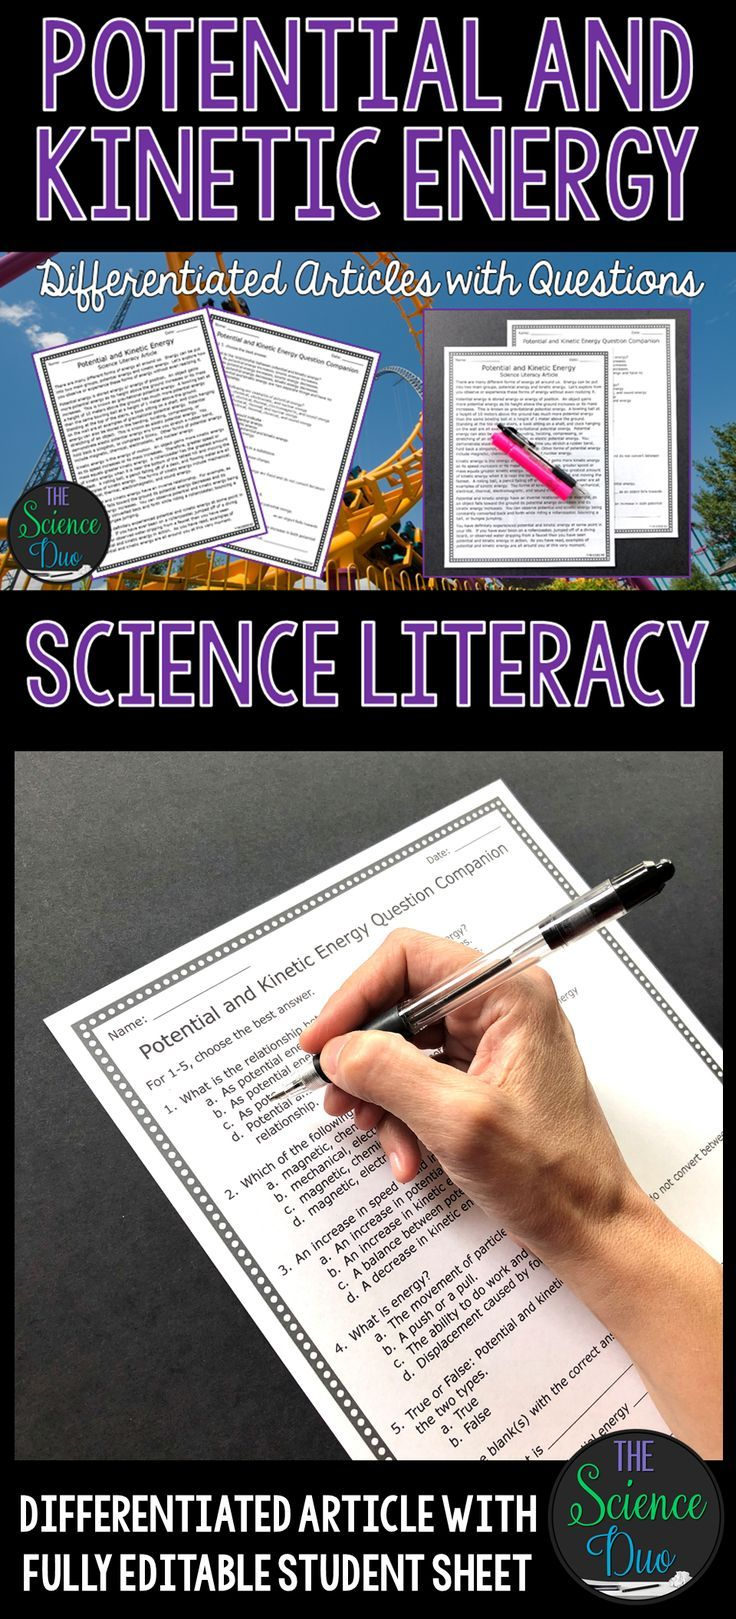 Potential And Kinetic Energy Science Literacy Article Science Literacy Heat Transfer Science Middle School Science Teacher